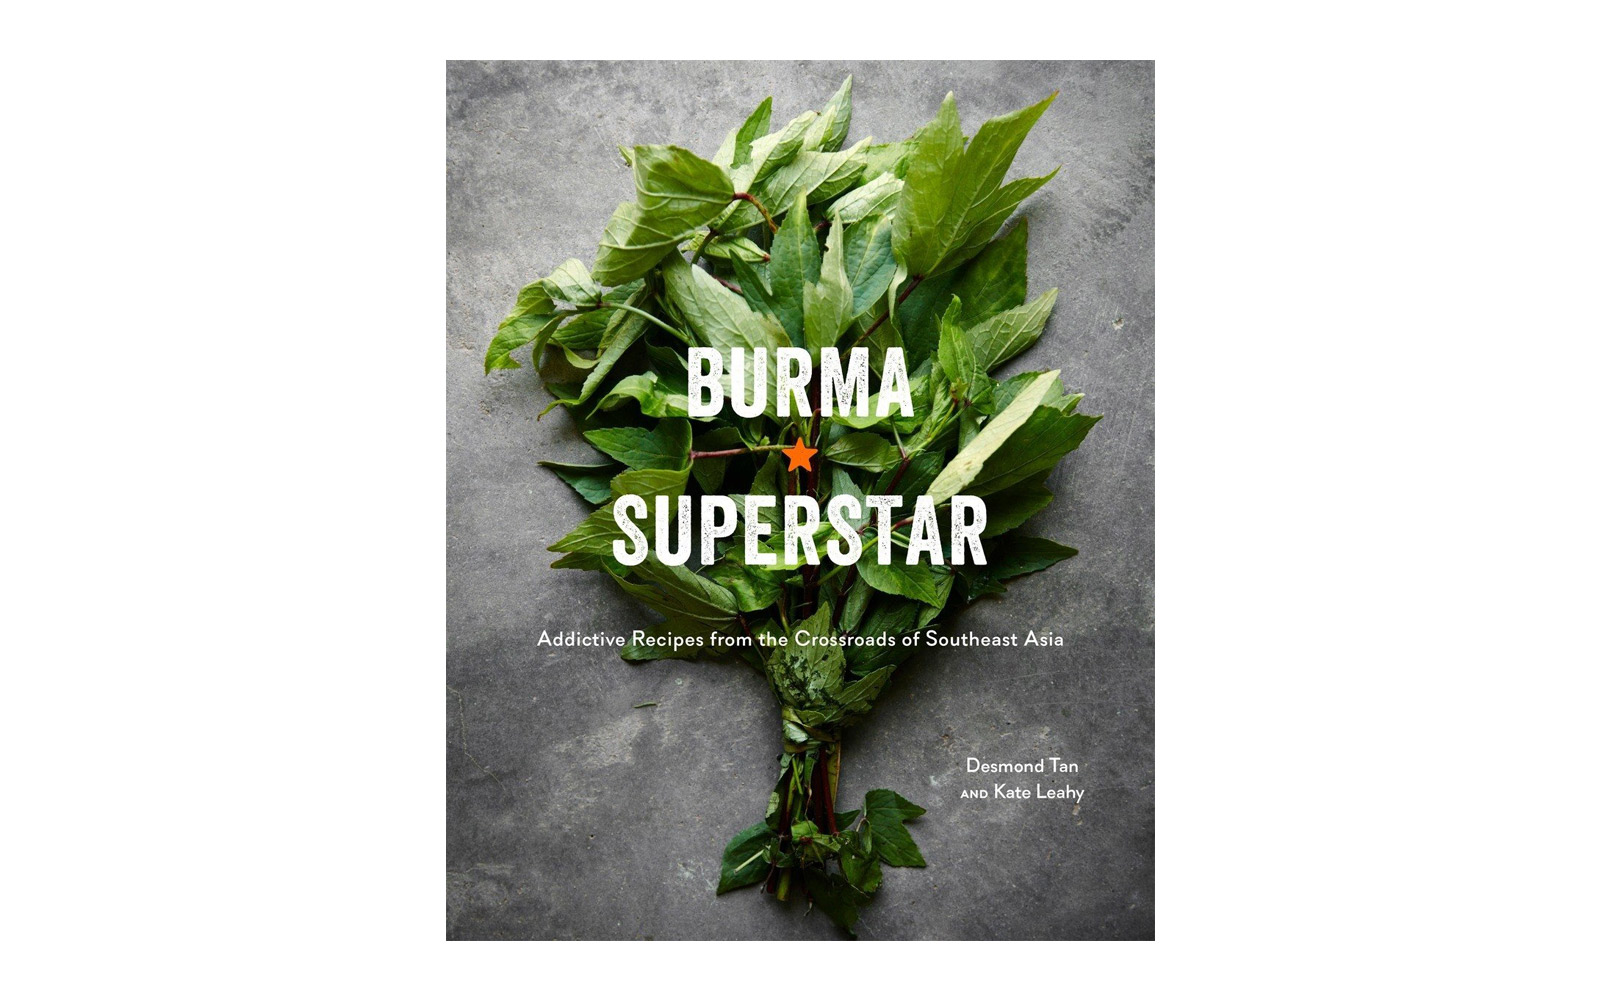 Burma Superstar, by Desmond Tan and Kate Leahy